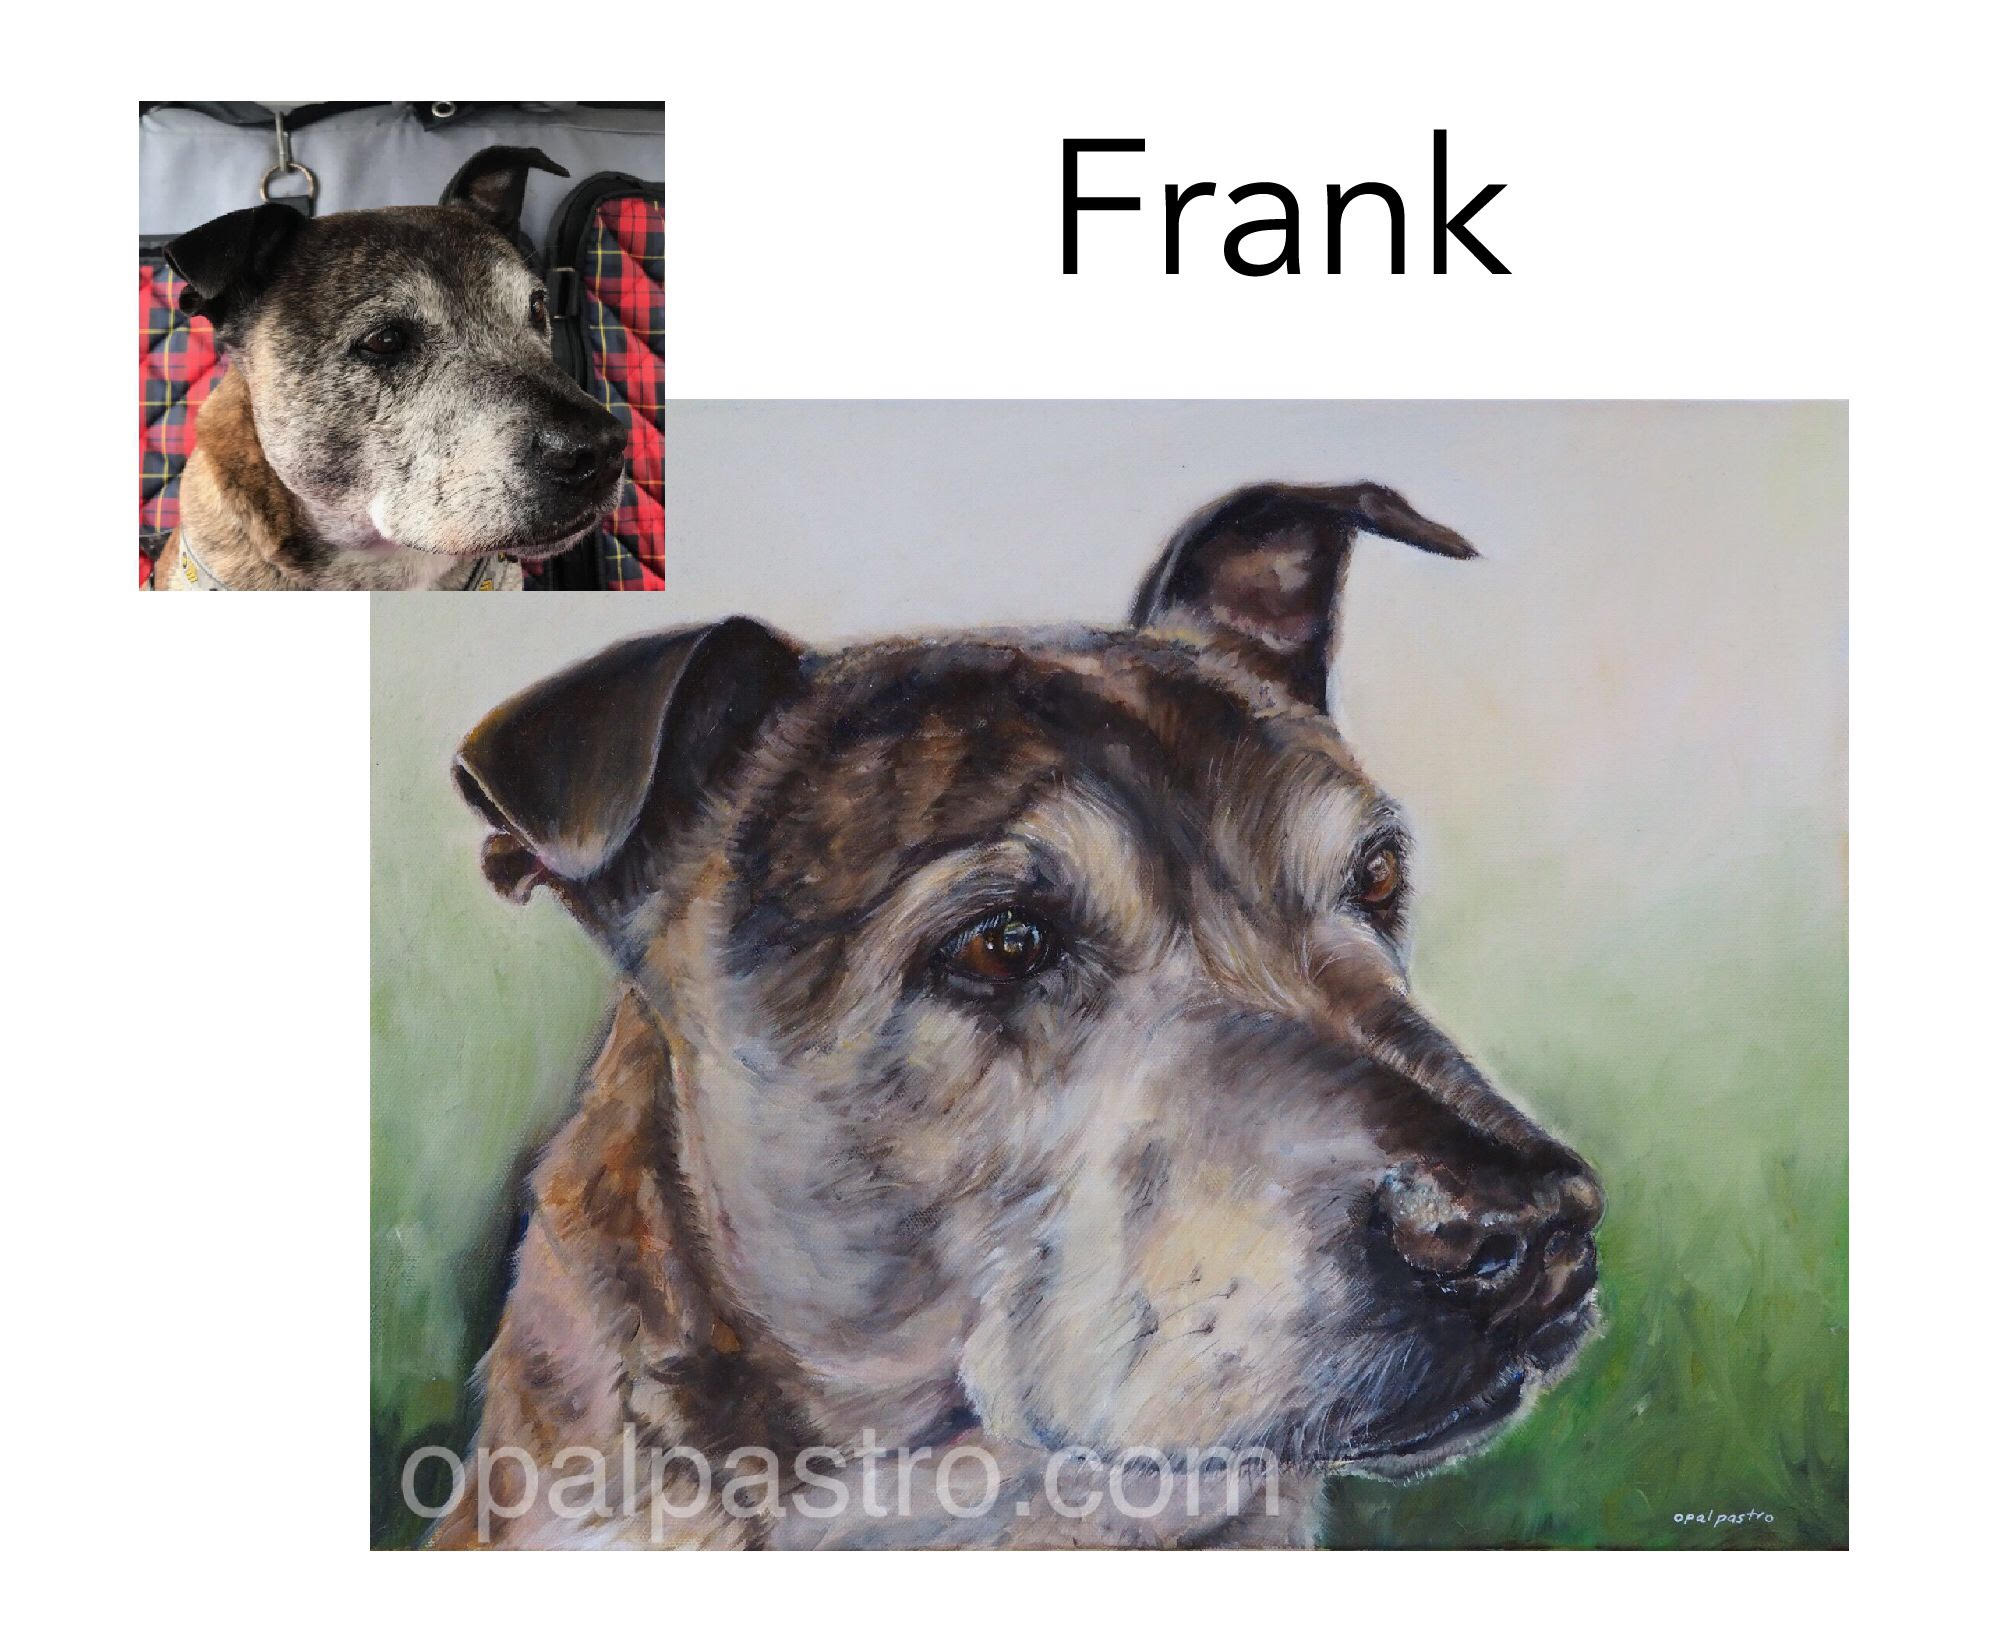 """English Staffy - Acrylic and oil on Canvas, 14"""" x 18"""" (35.5cm x 45.72cm)Private memorial portraitBellingen, NSW—————————————-Frank had a great life and a loved life. His mission in life was to created mayhem and madness- even so, he is a very dearly missed member of his family. His memorial portrait was commissioned as a loving tribute to a dog who lives on in the hearts of those who loved him."""